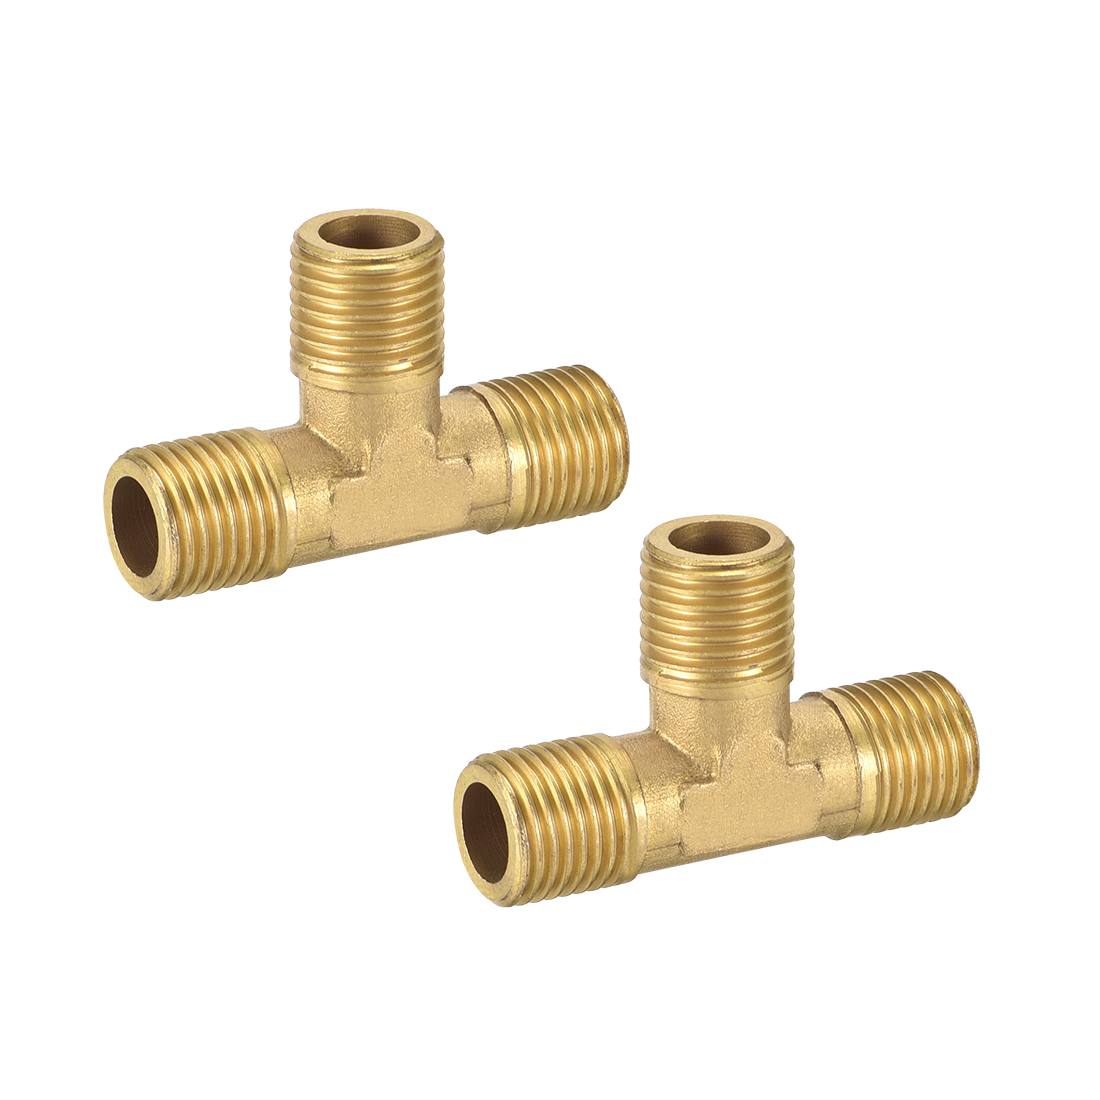 Brass Tee Pipe Fitting 1/4NPT Male Thread T Shaped Connector Coupler 2pcs